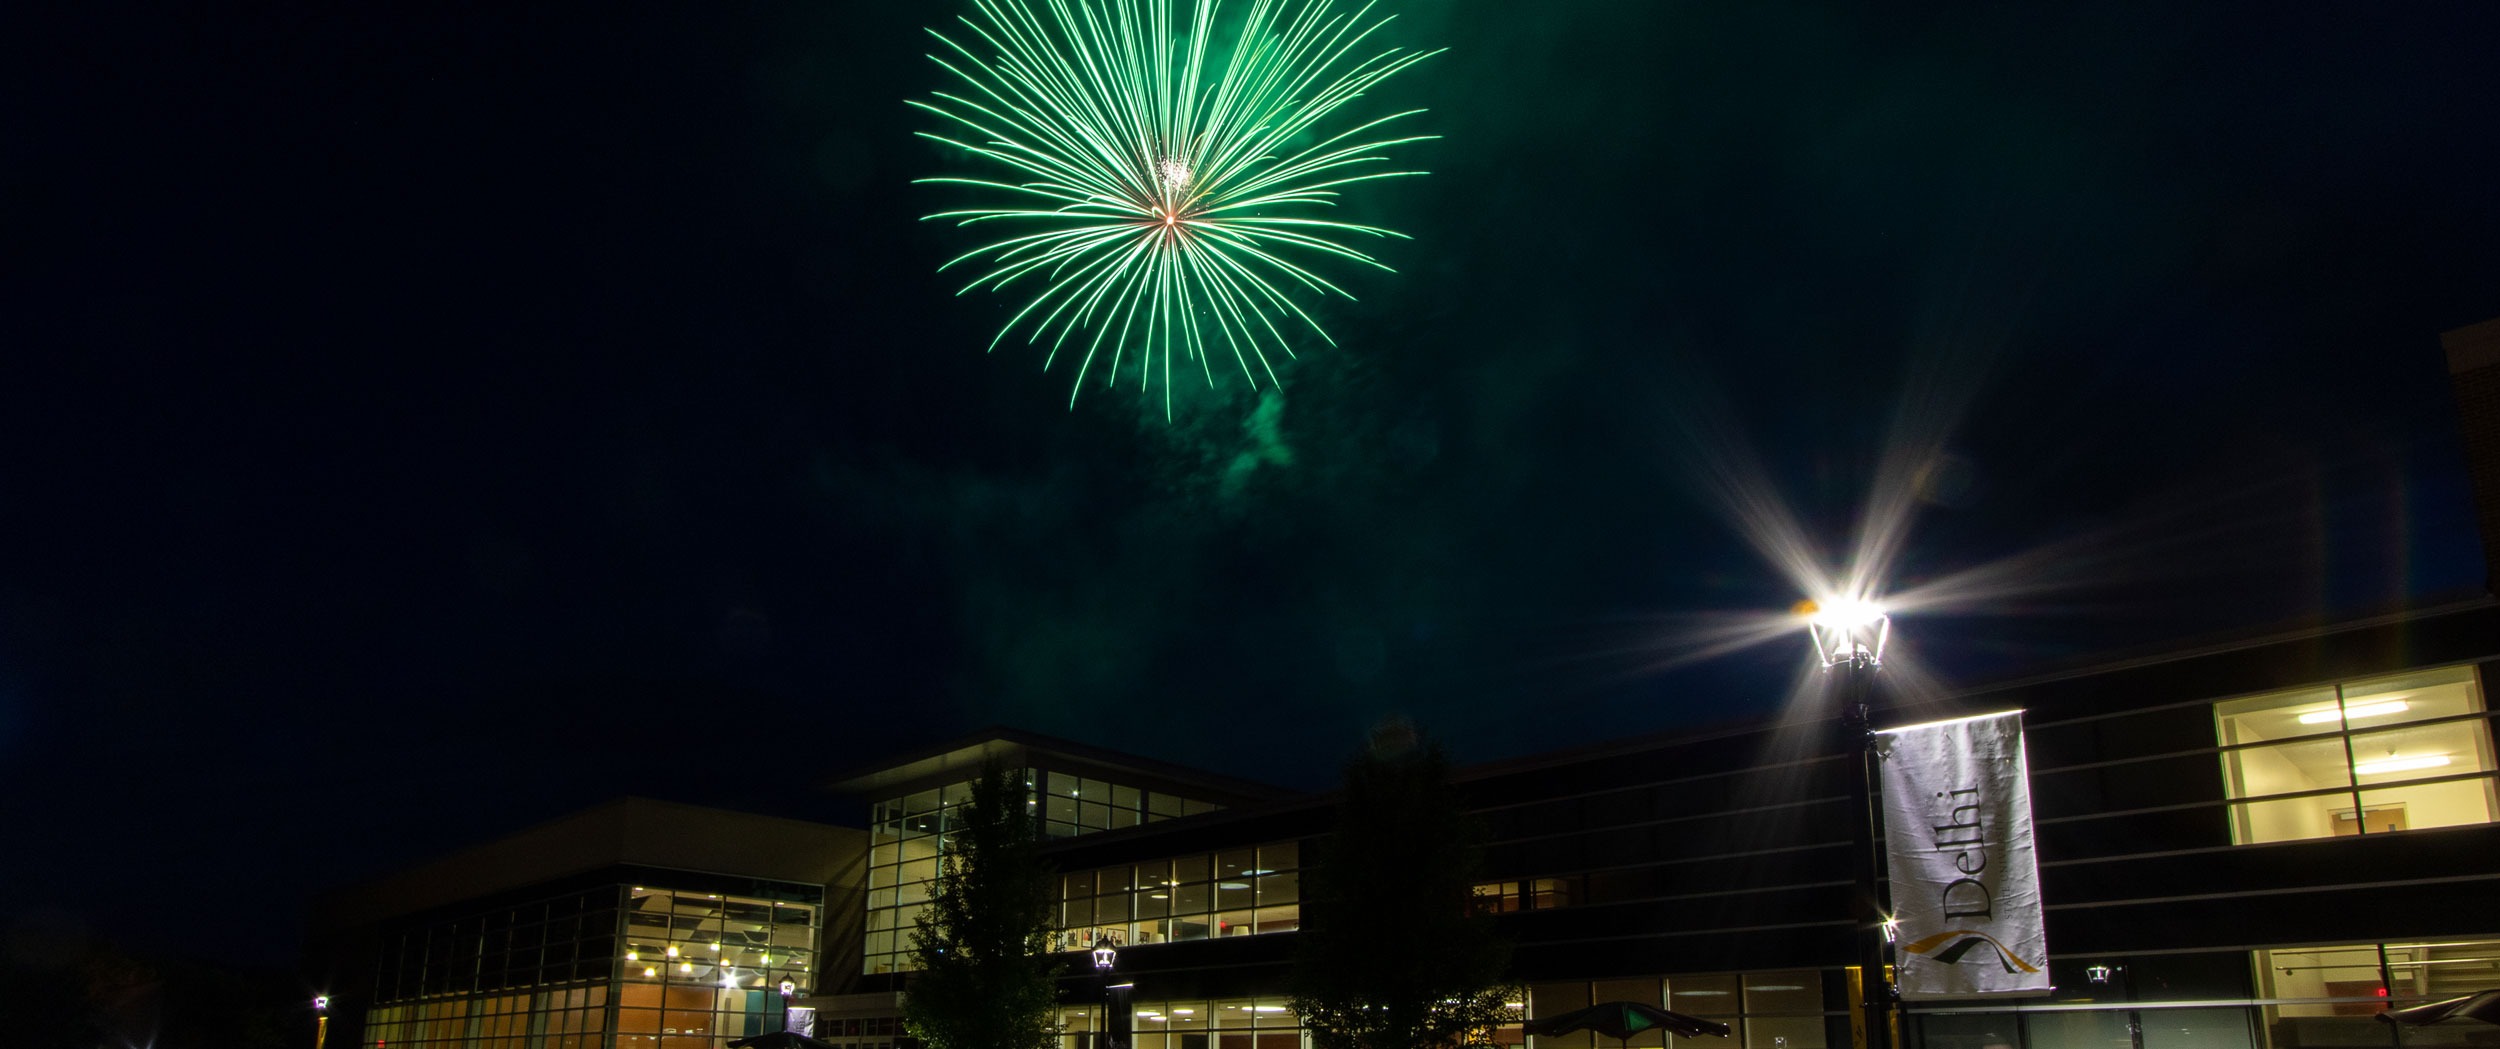 SUNY Delhi at night with fireworks in the sky